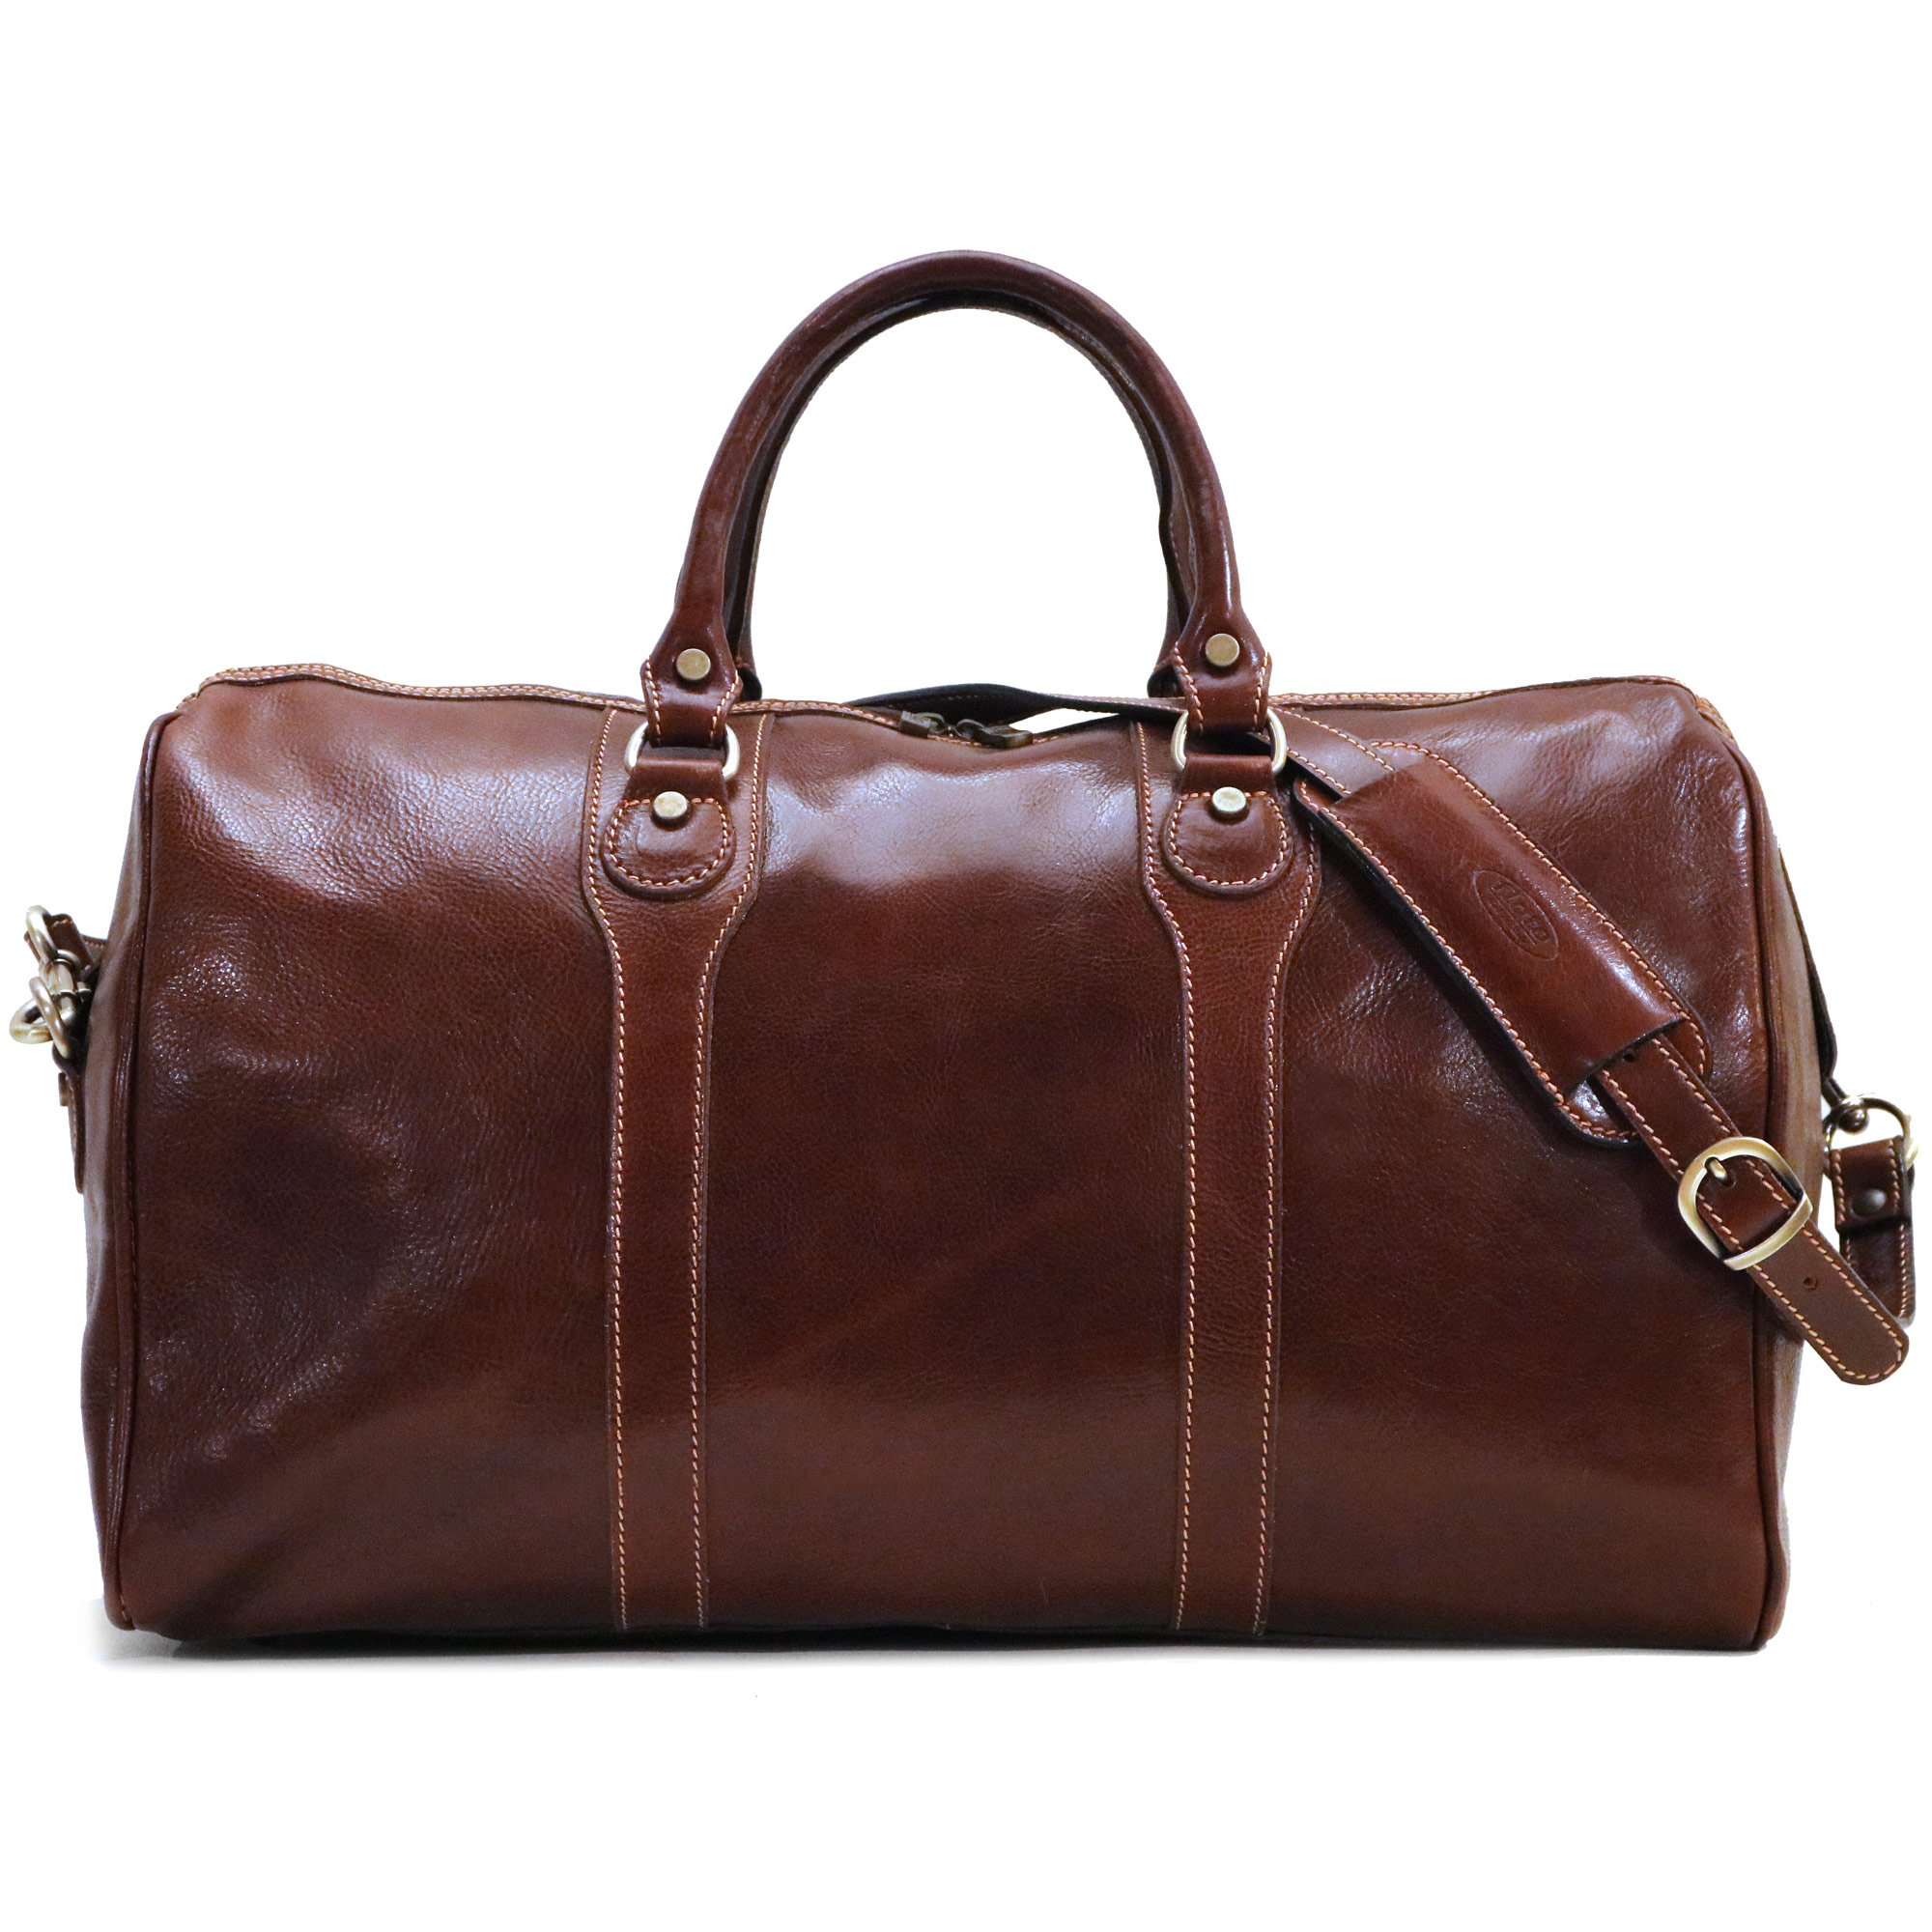 Floto Luggage Milano Duffle Bag, Vecchio Brown, One Size